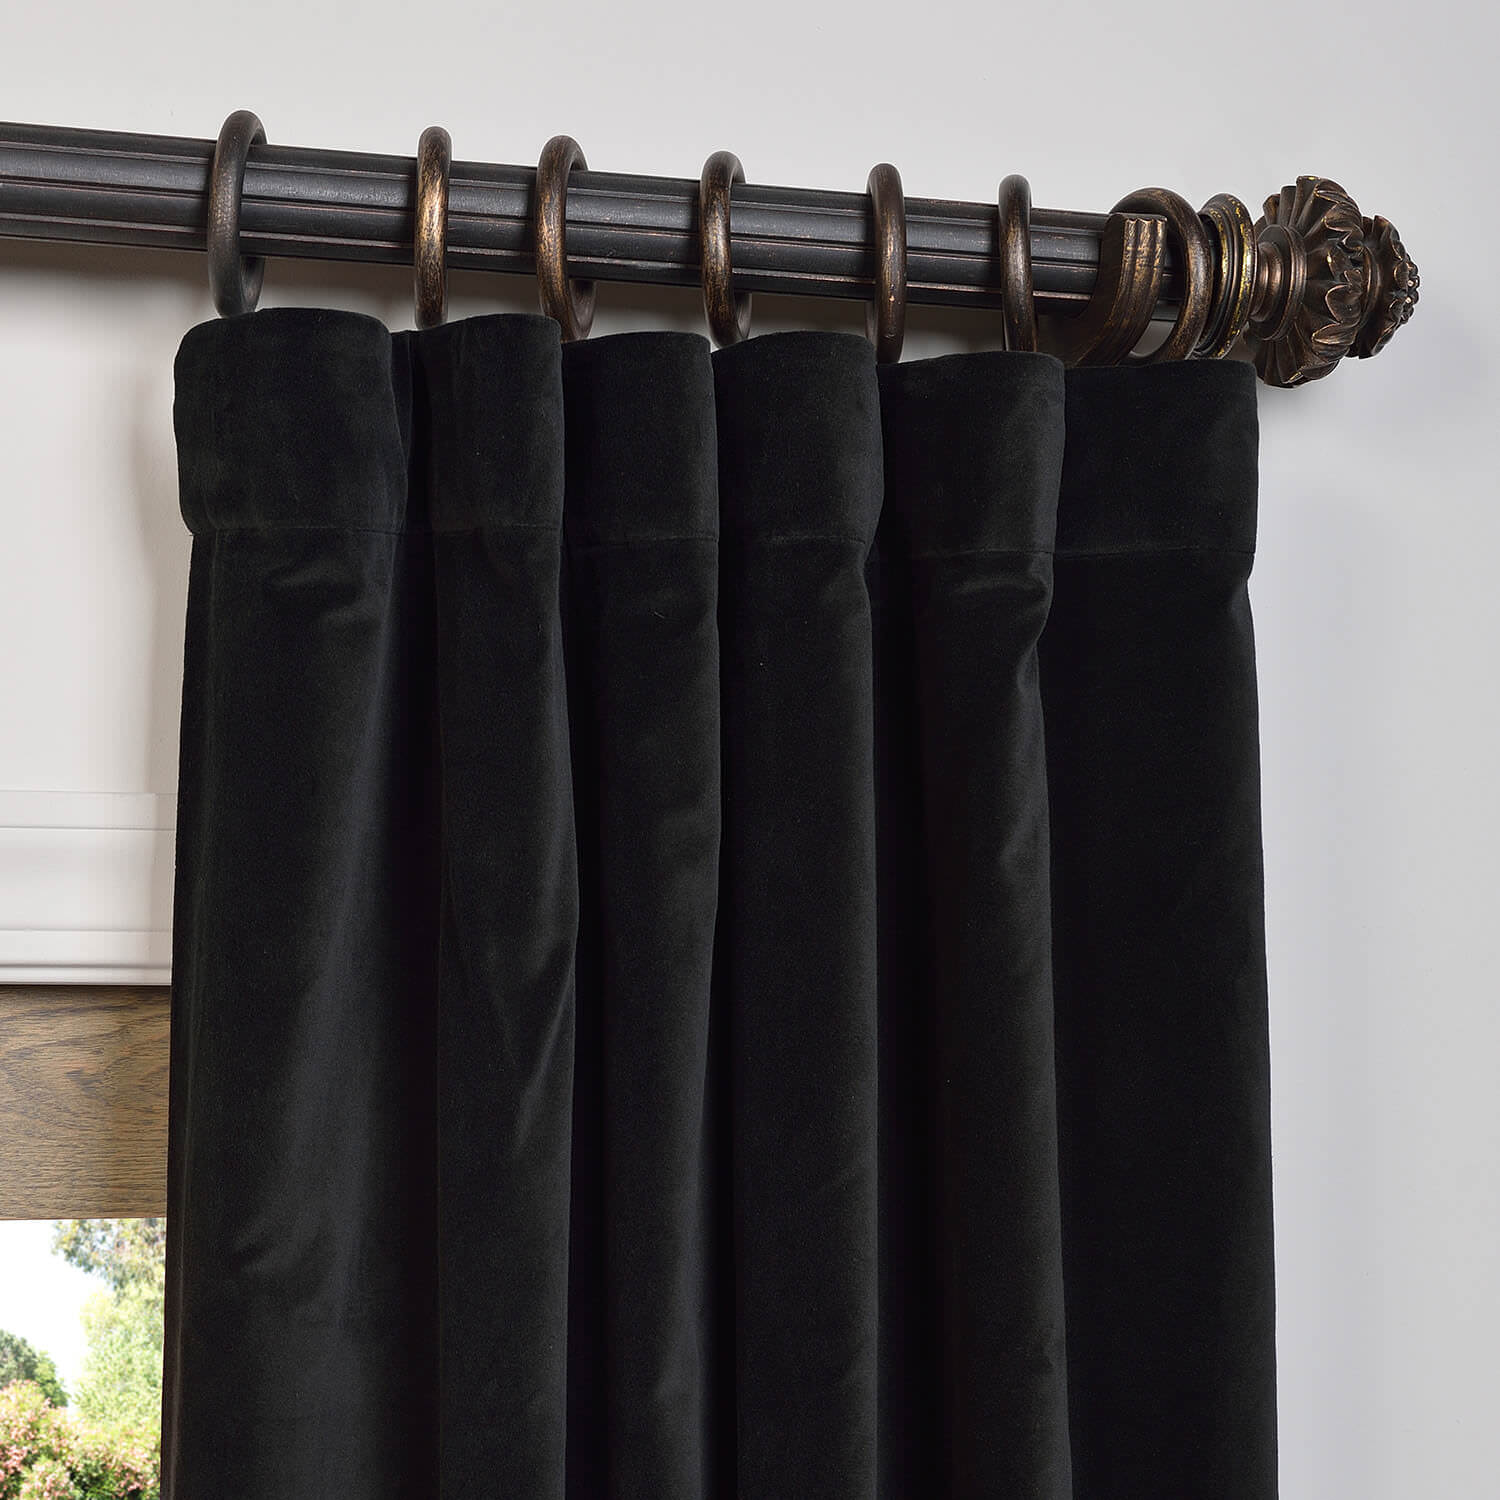 Black Vintage Cotton Velvet Curtain